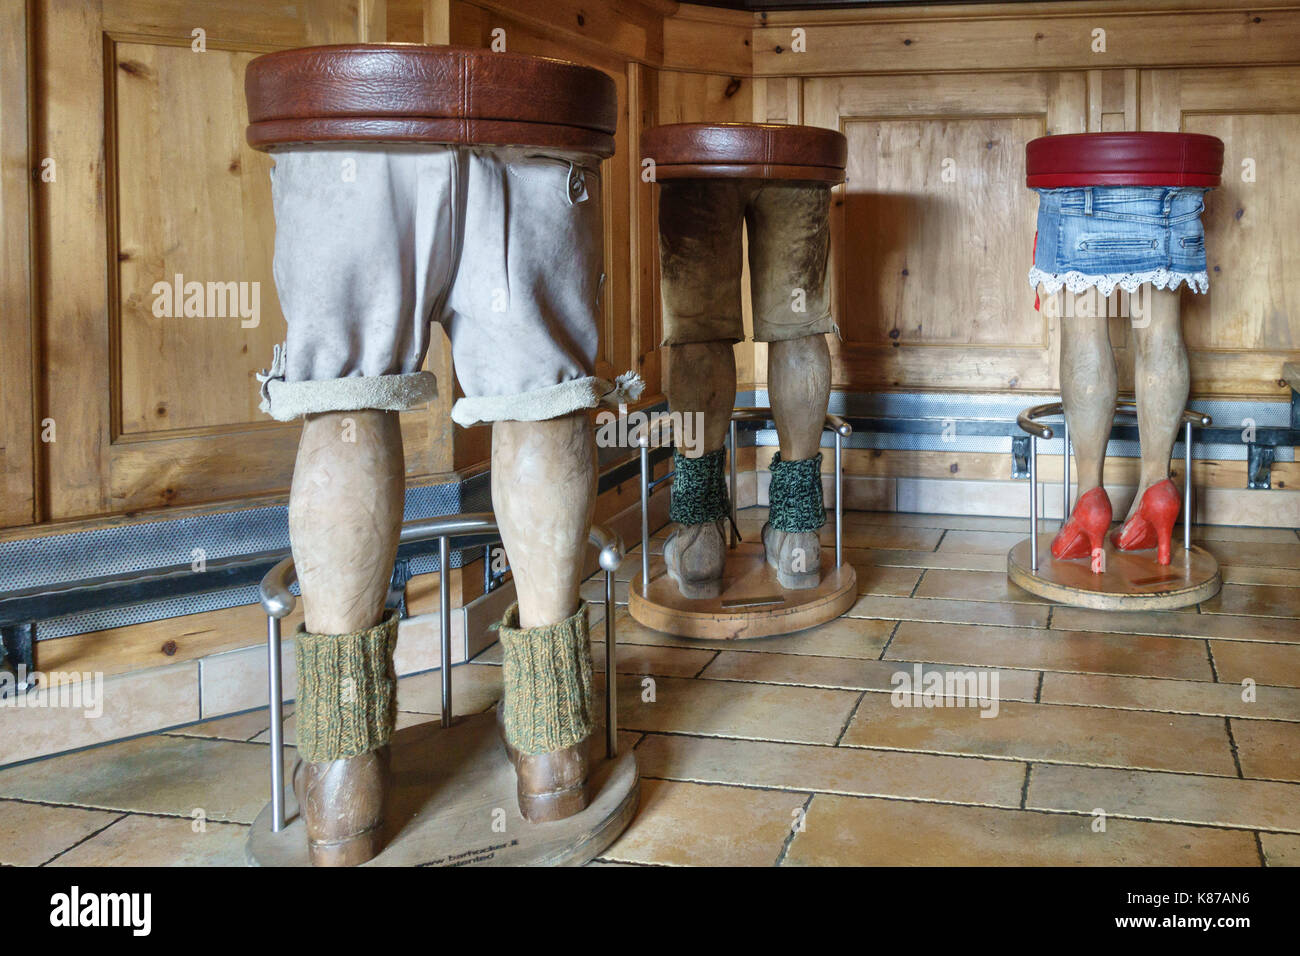 The Dolomites, Northern Italy. Unusual bar stools shaped like hikers' legs in the mountain guesthouse Rifugio Sennes Stock Photo